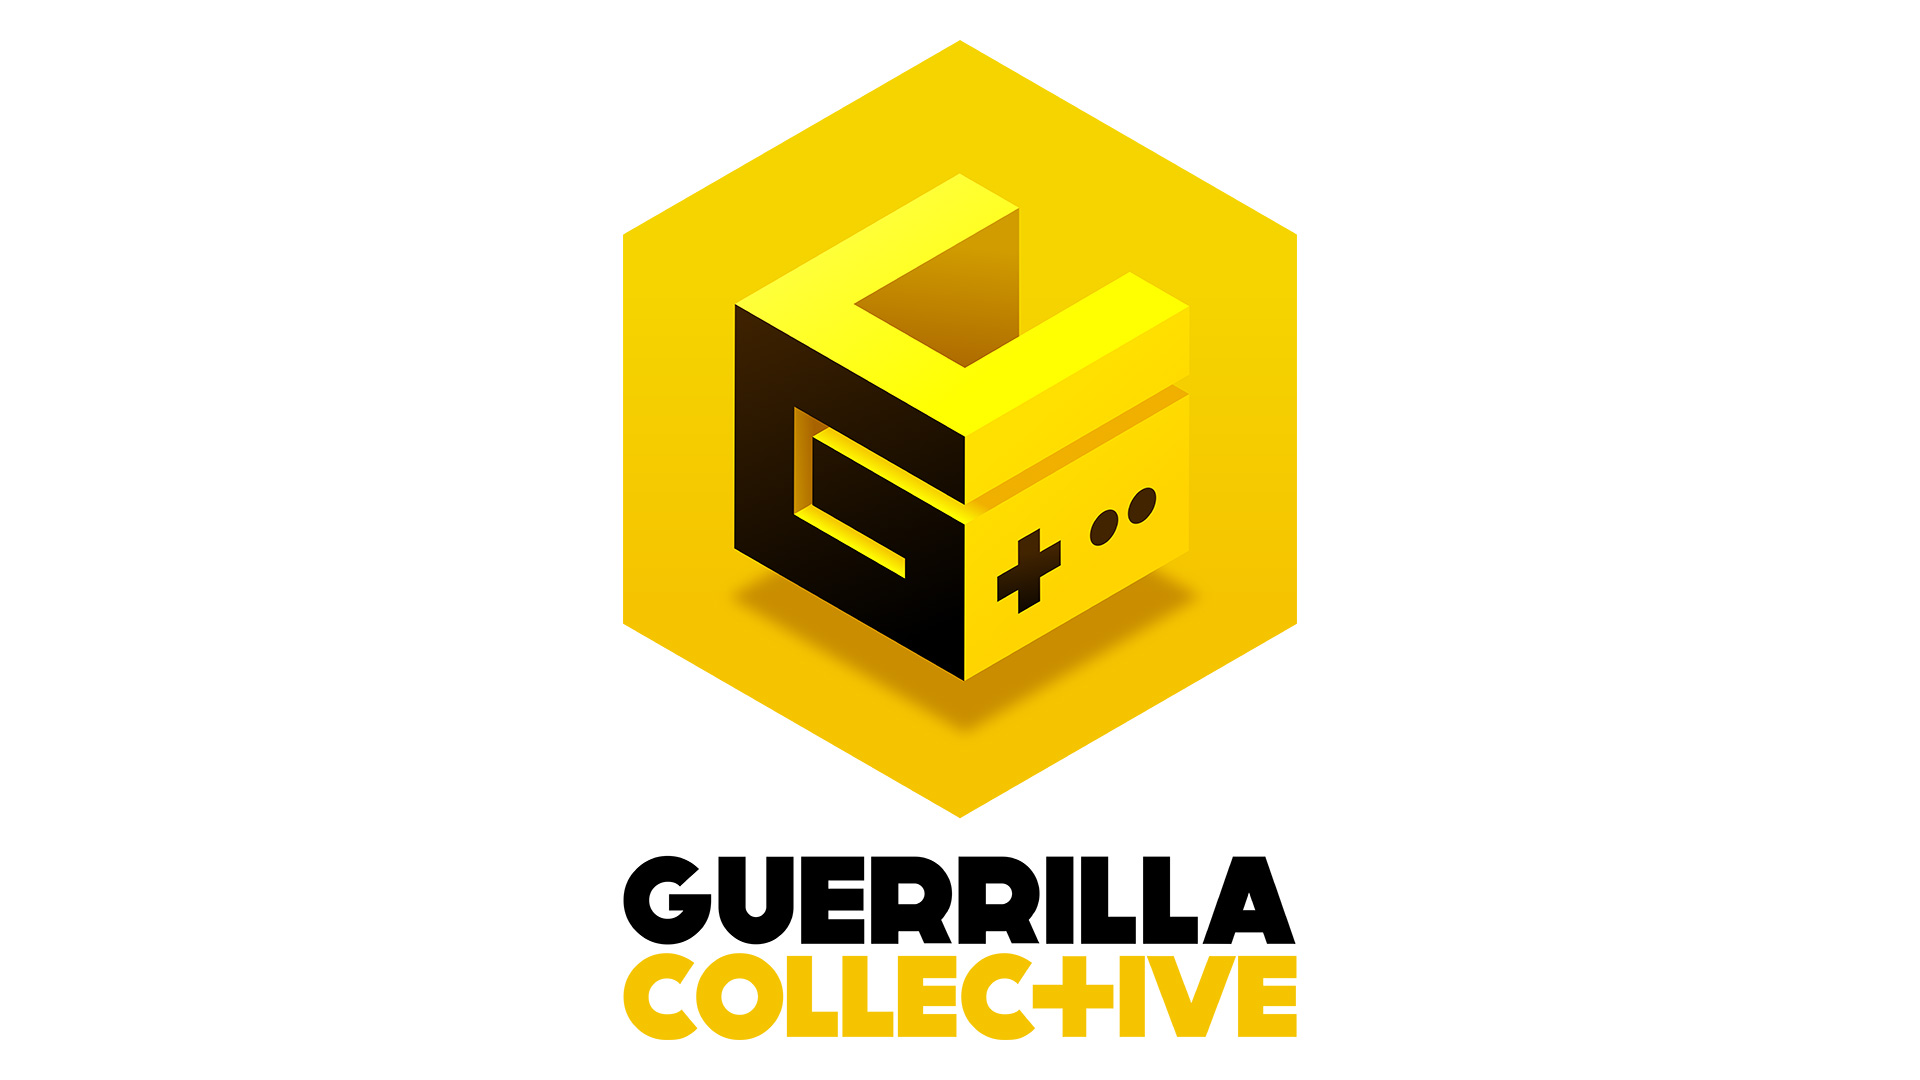 Indies are banding together for the Guerrilla Collective showcase in June screenshot